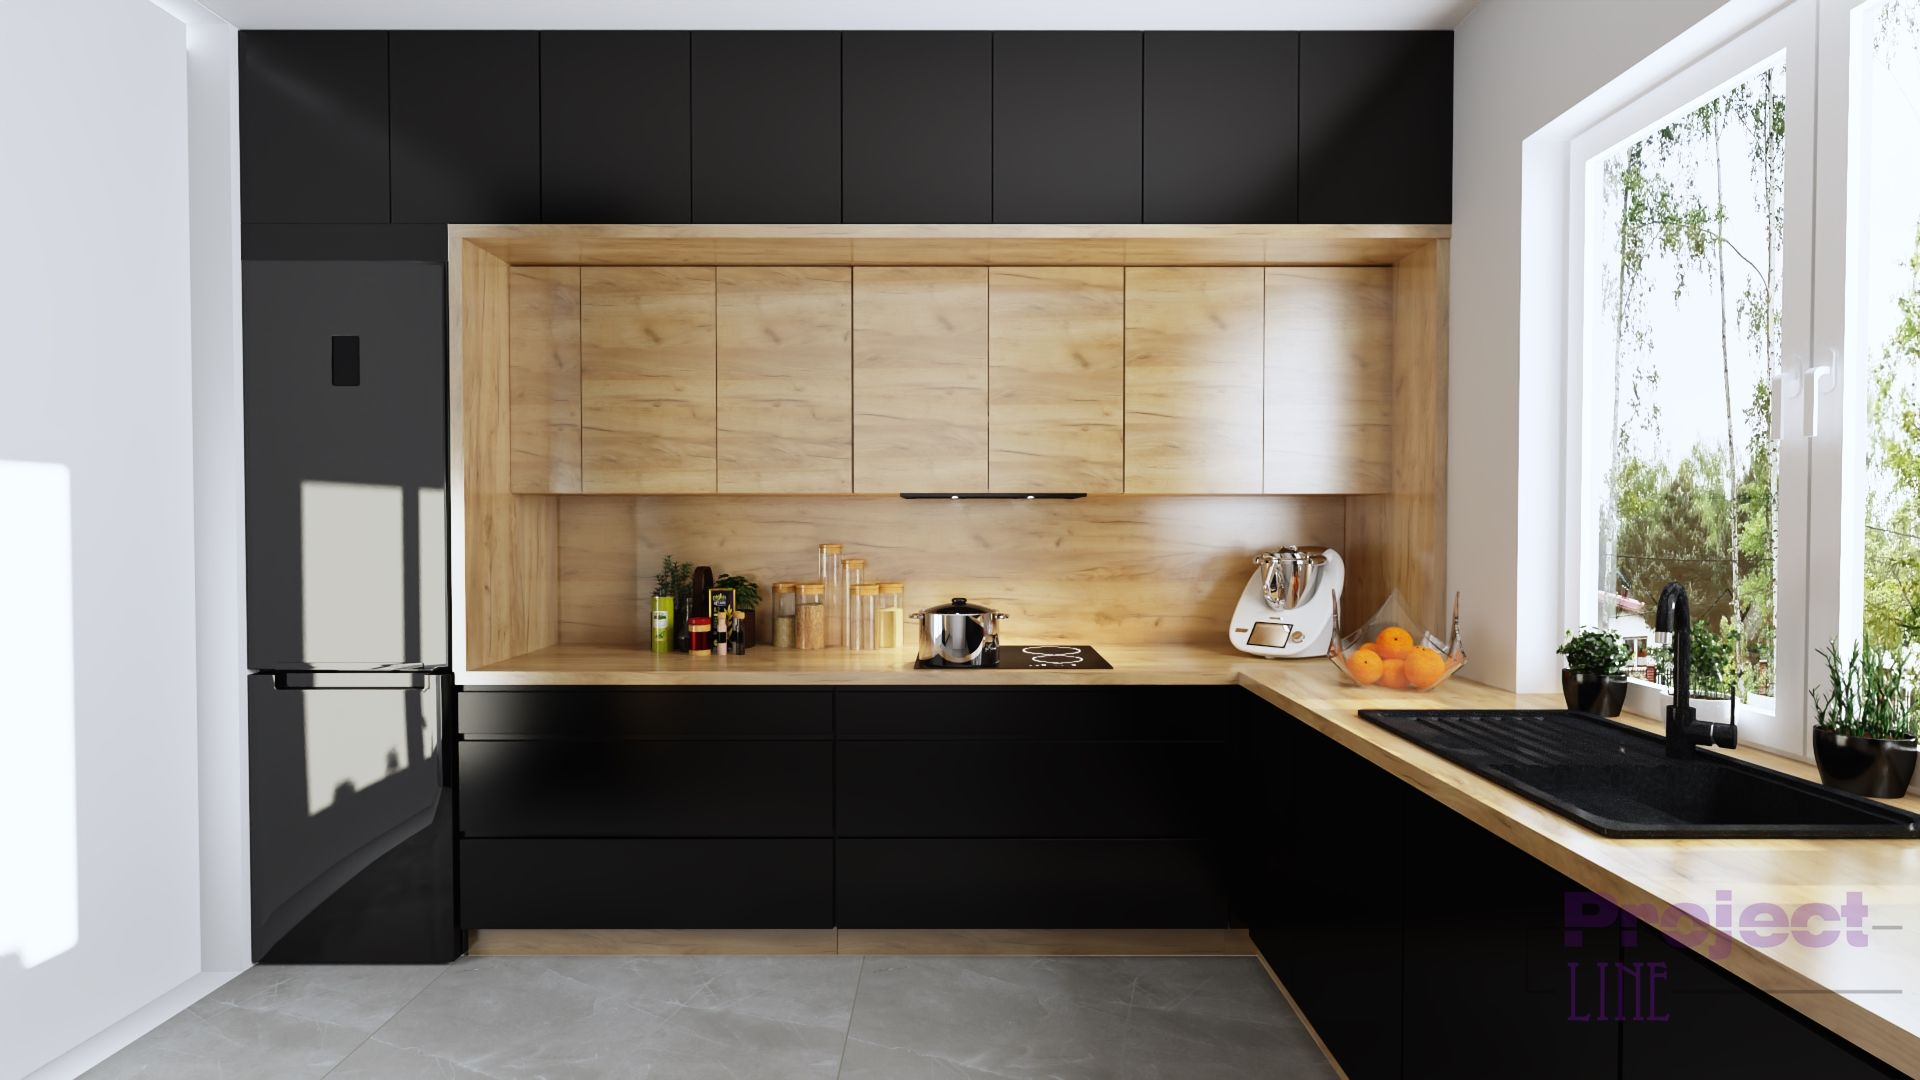 15 Best Wood Kitchen Ideas Wood Kitchen Cabinets Countertops And Islands